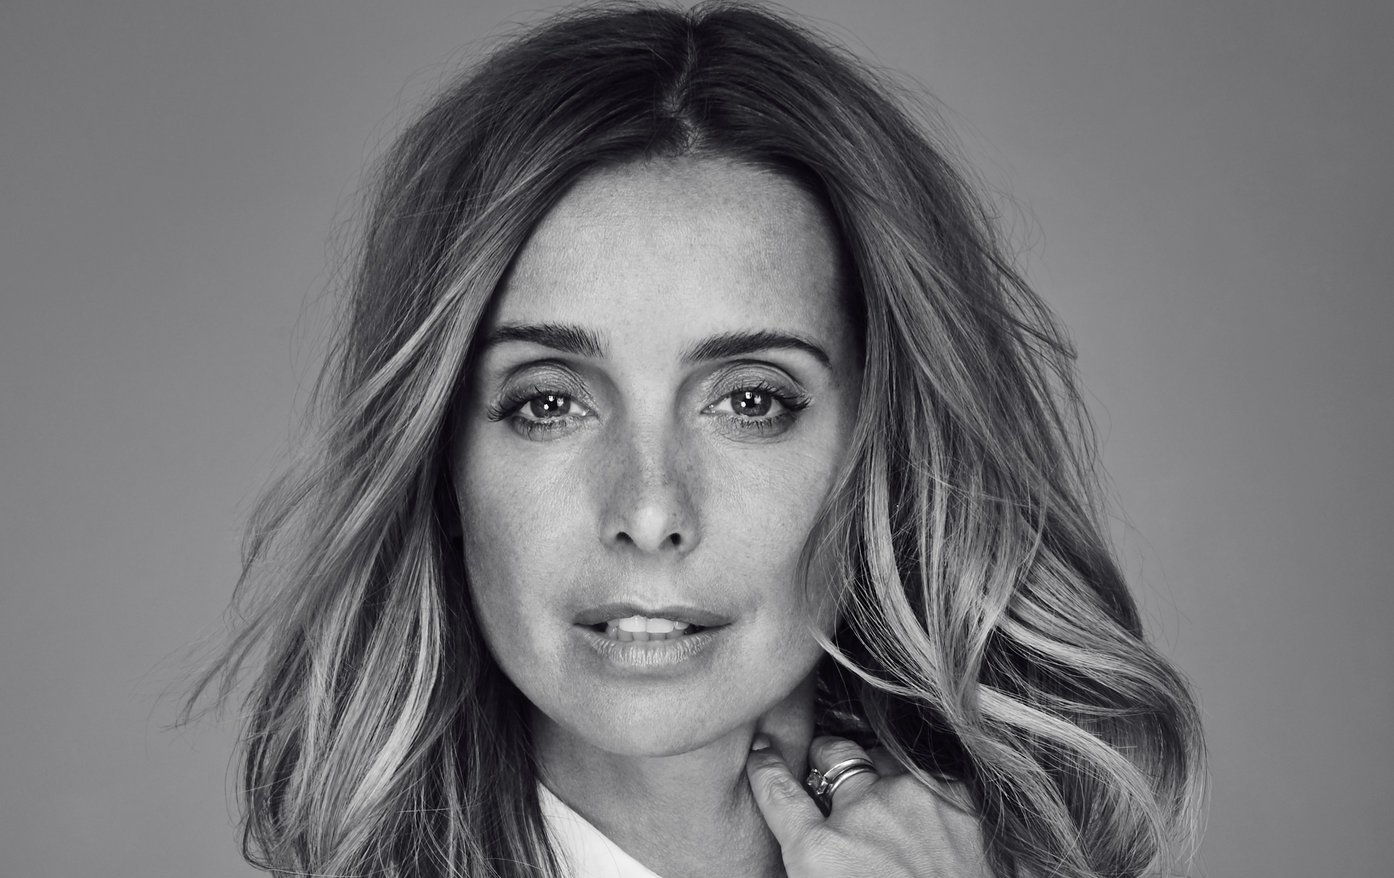 Louise Redknapp forced to pull out of West End musical 9 to 5 due to injury